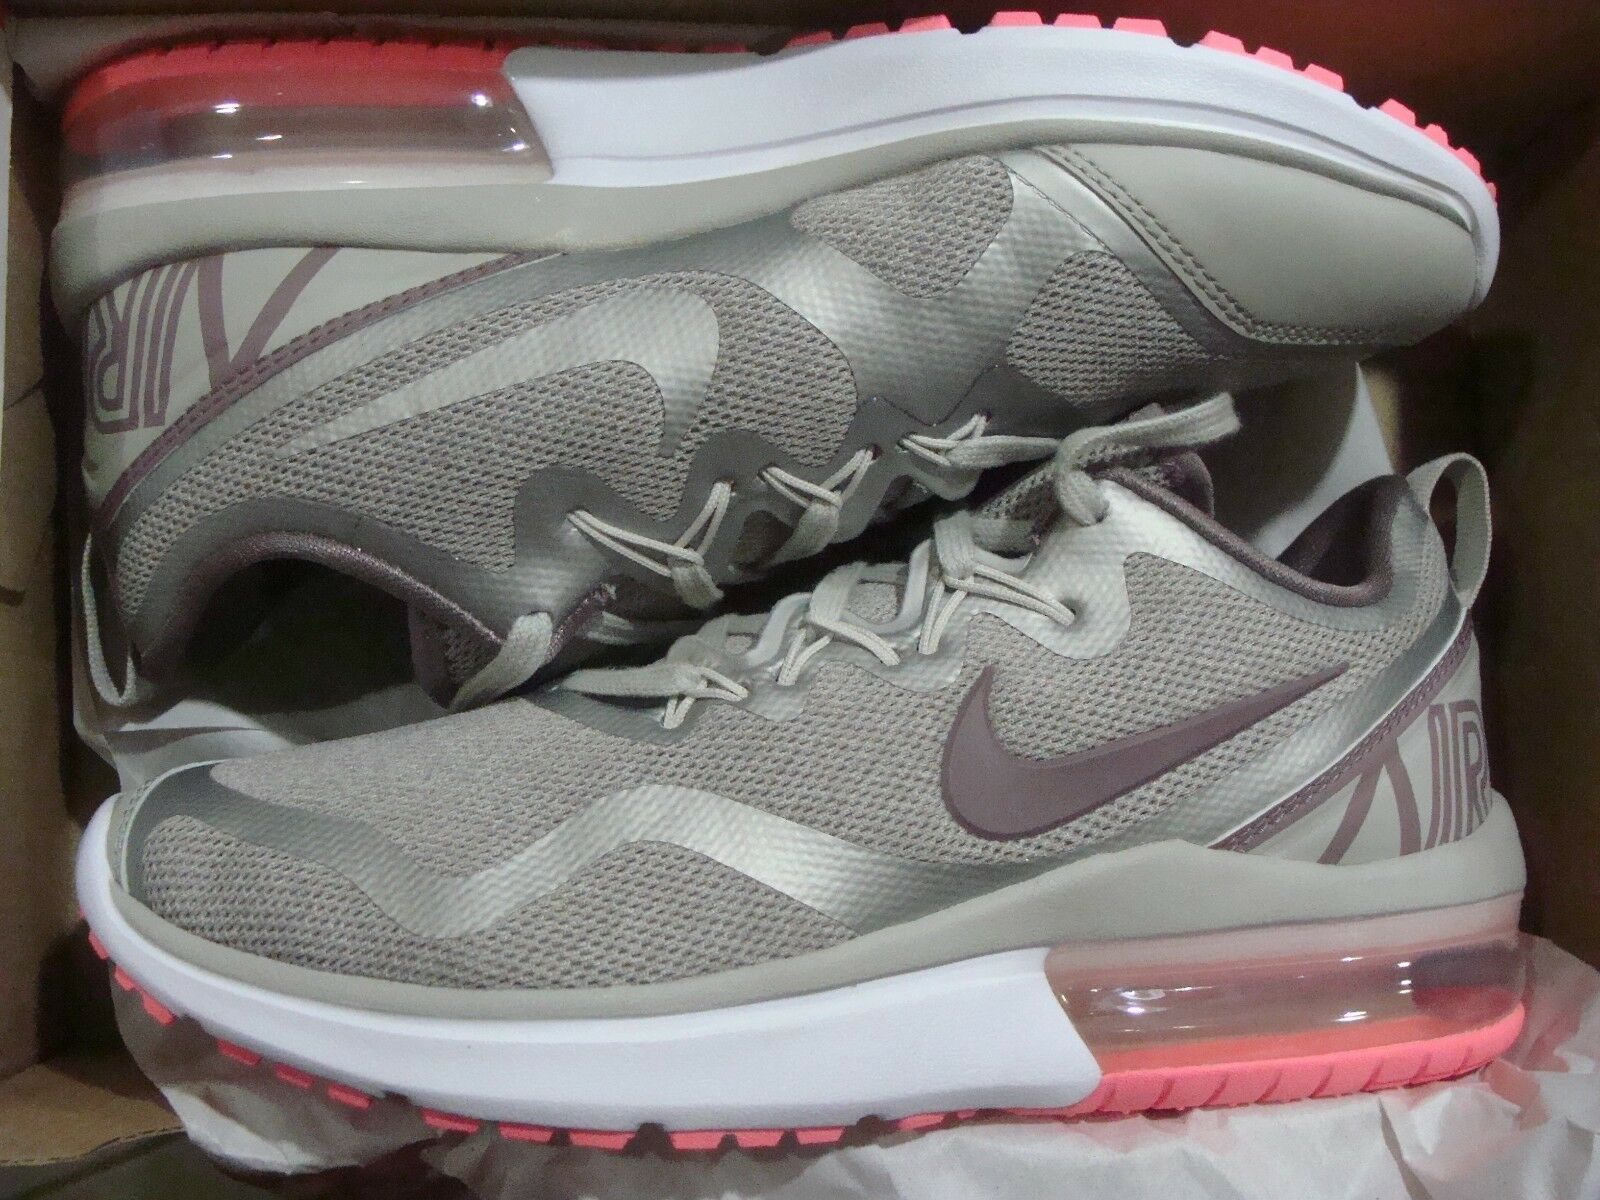 WMNS NIKE AIR MAX FURY AA5740 004 SIZE 6.5~10